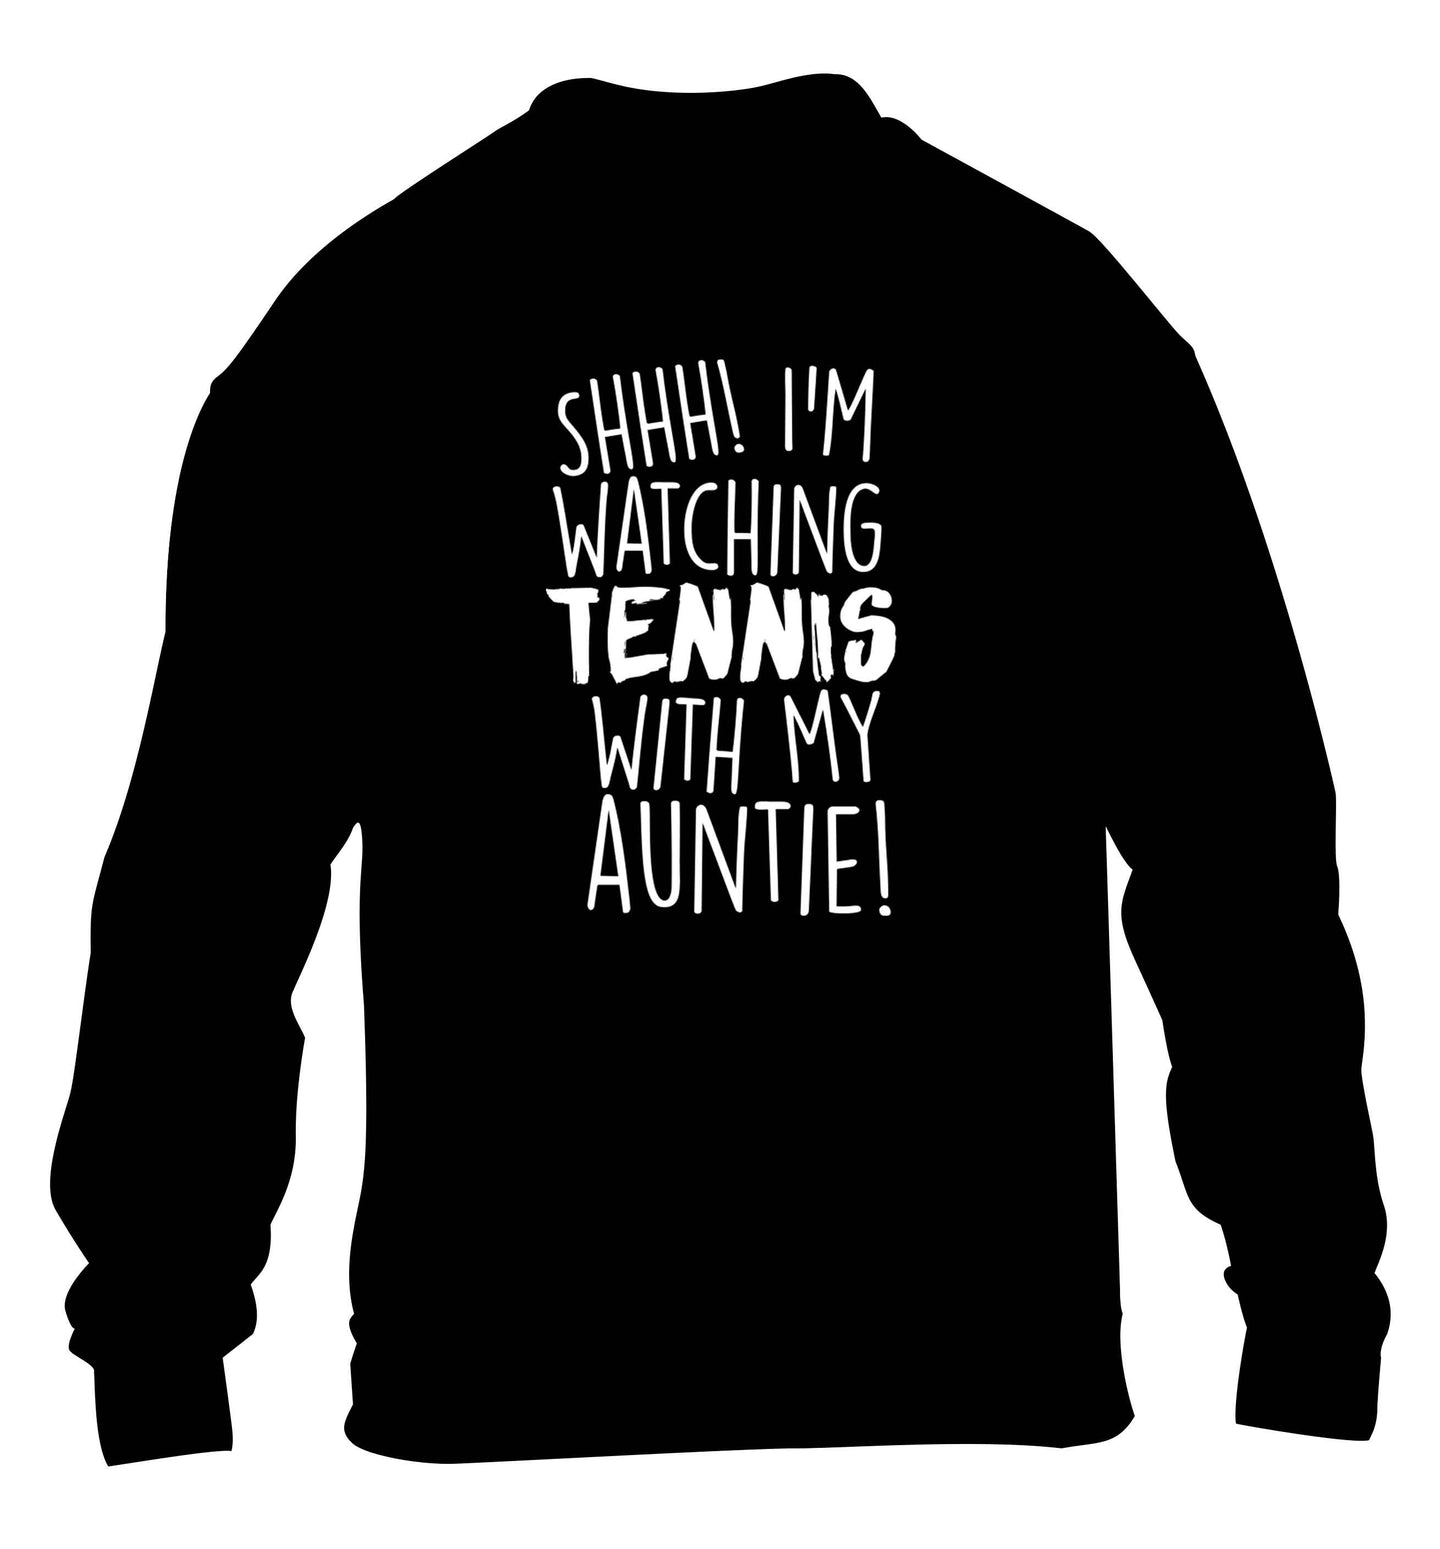 Shh! I'm watching tennis with my auntie! children's black sweater 12-13 Years